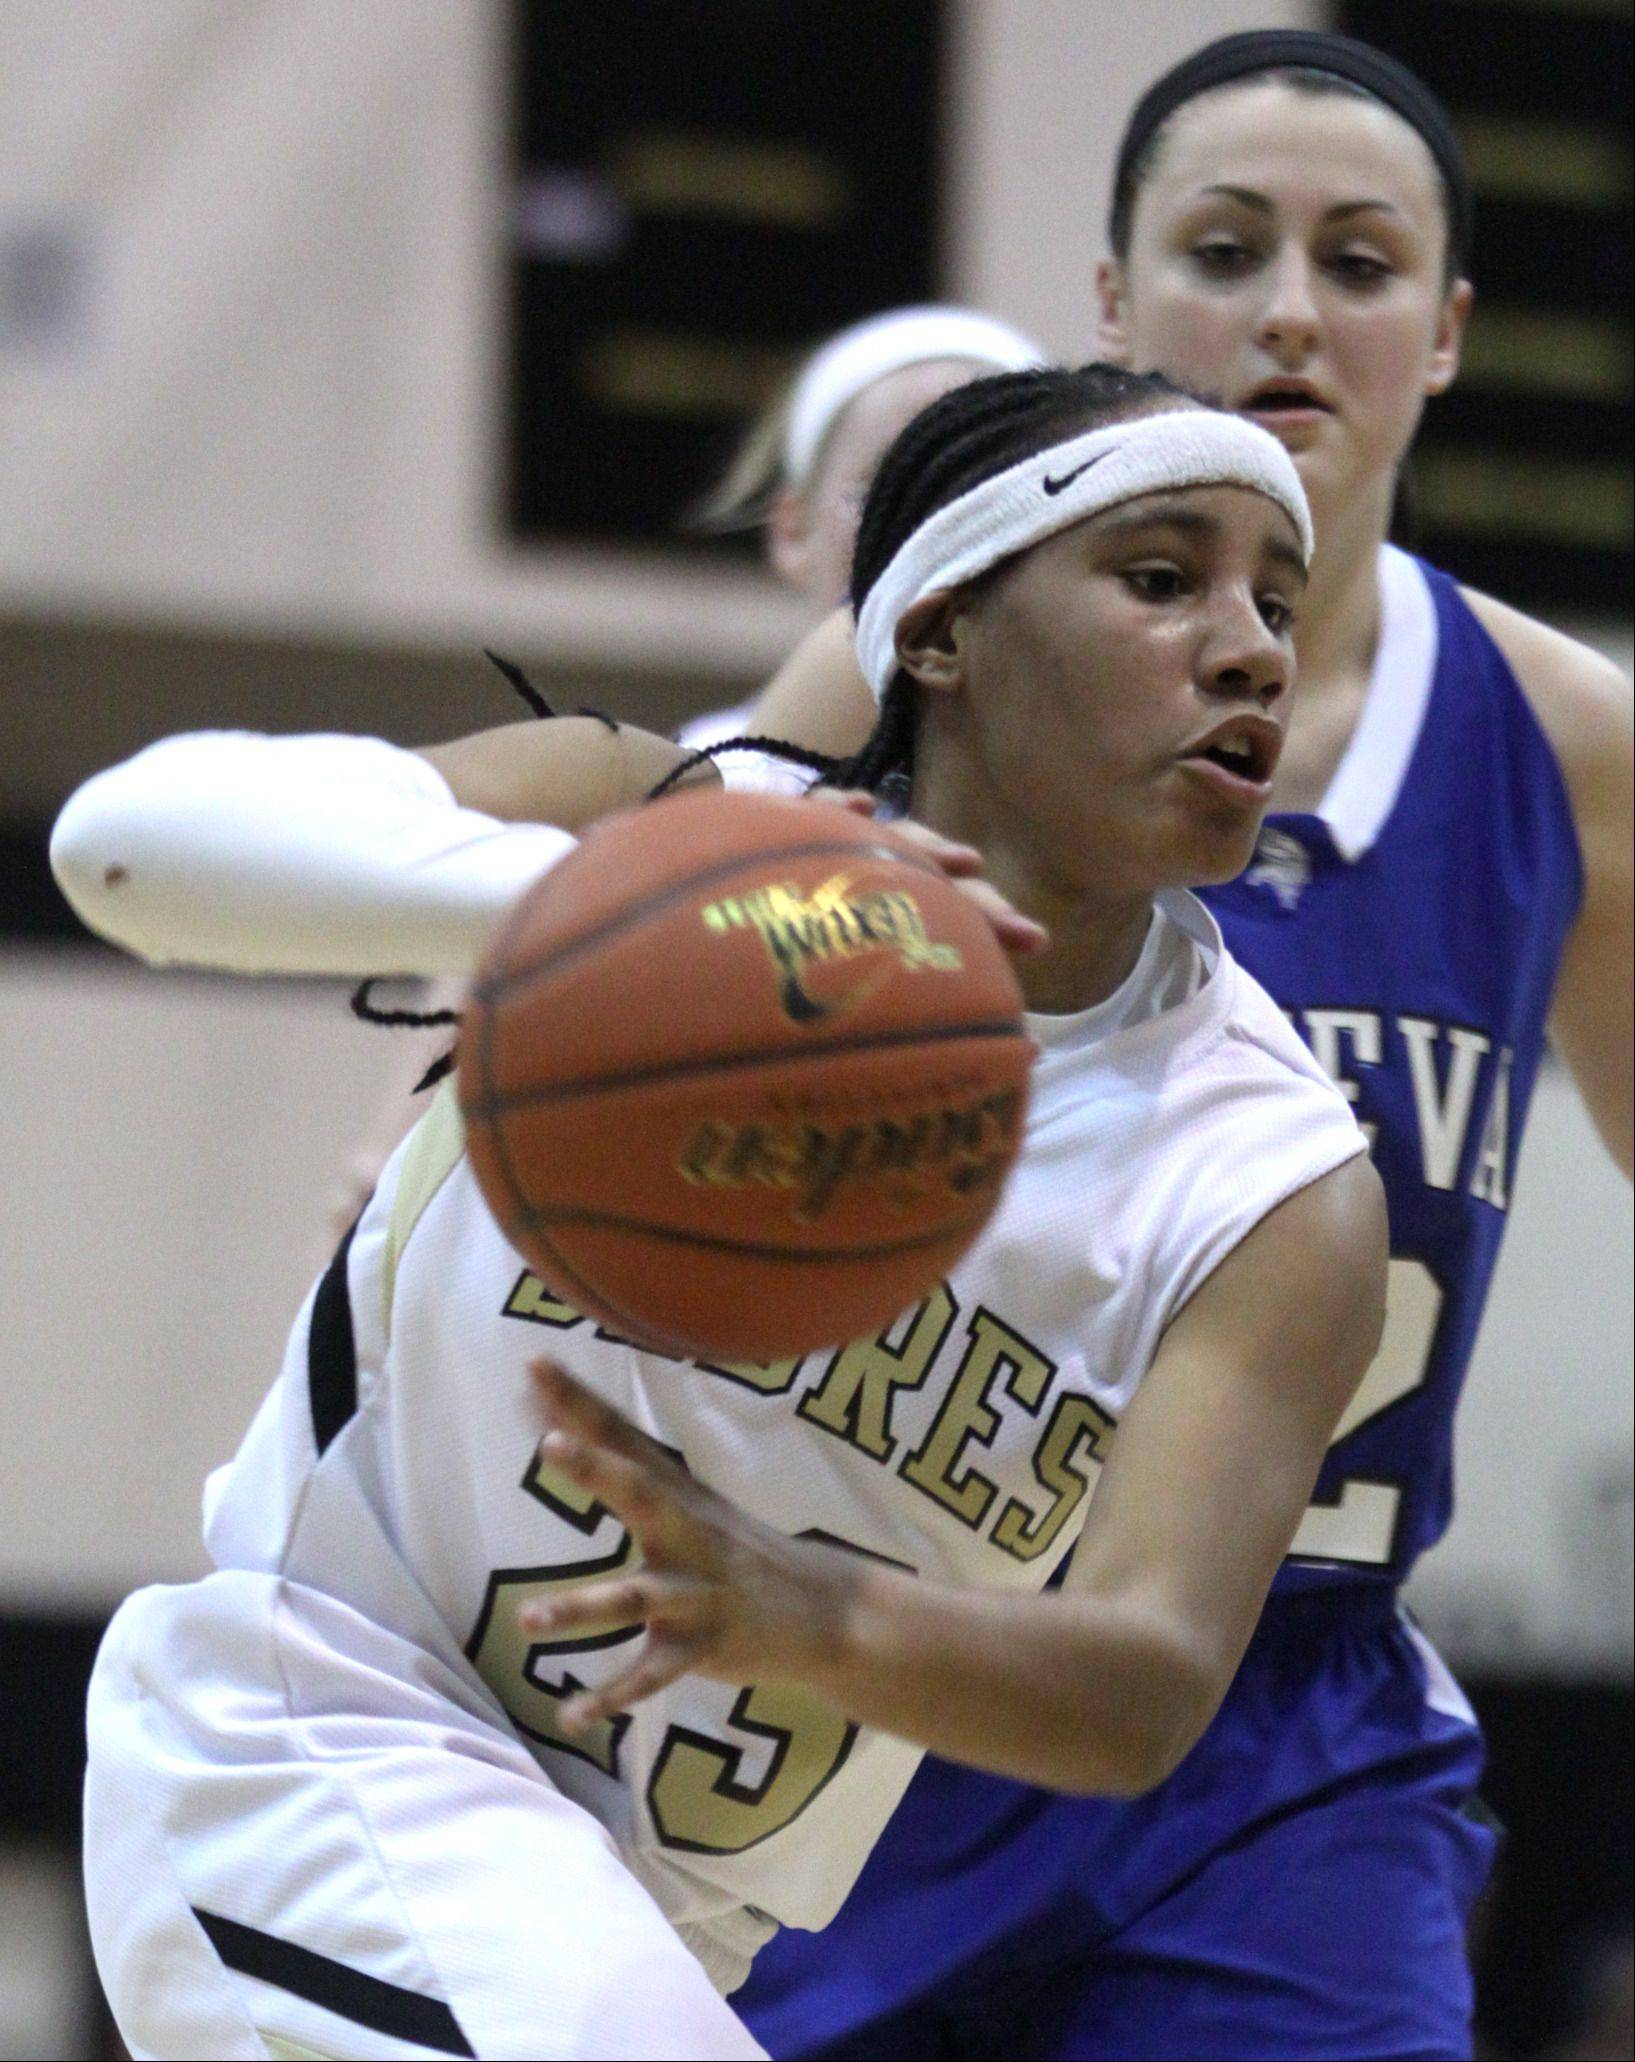 Streamwood's Deja Moore moves the ball past Geneva's Abby Novak during a varsity basketball game at Streamwood on Friday night. Geneva won the game 54-43.